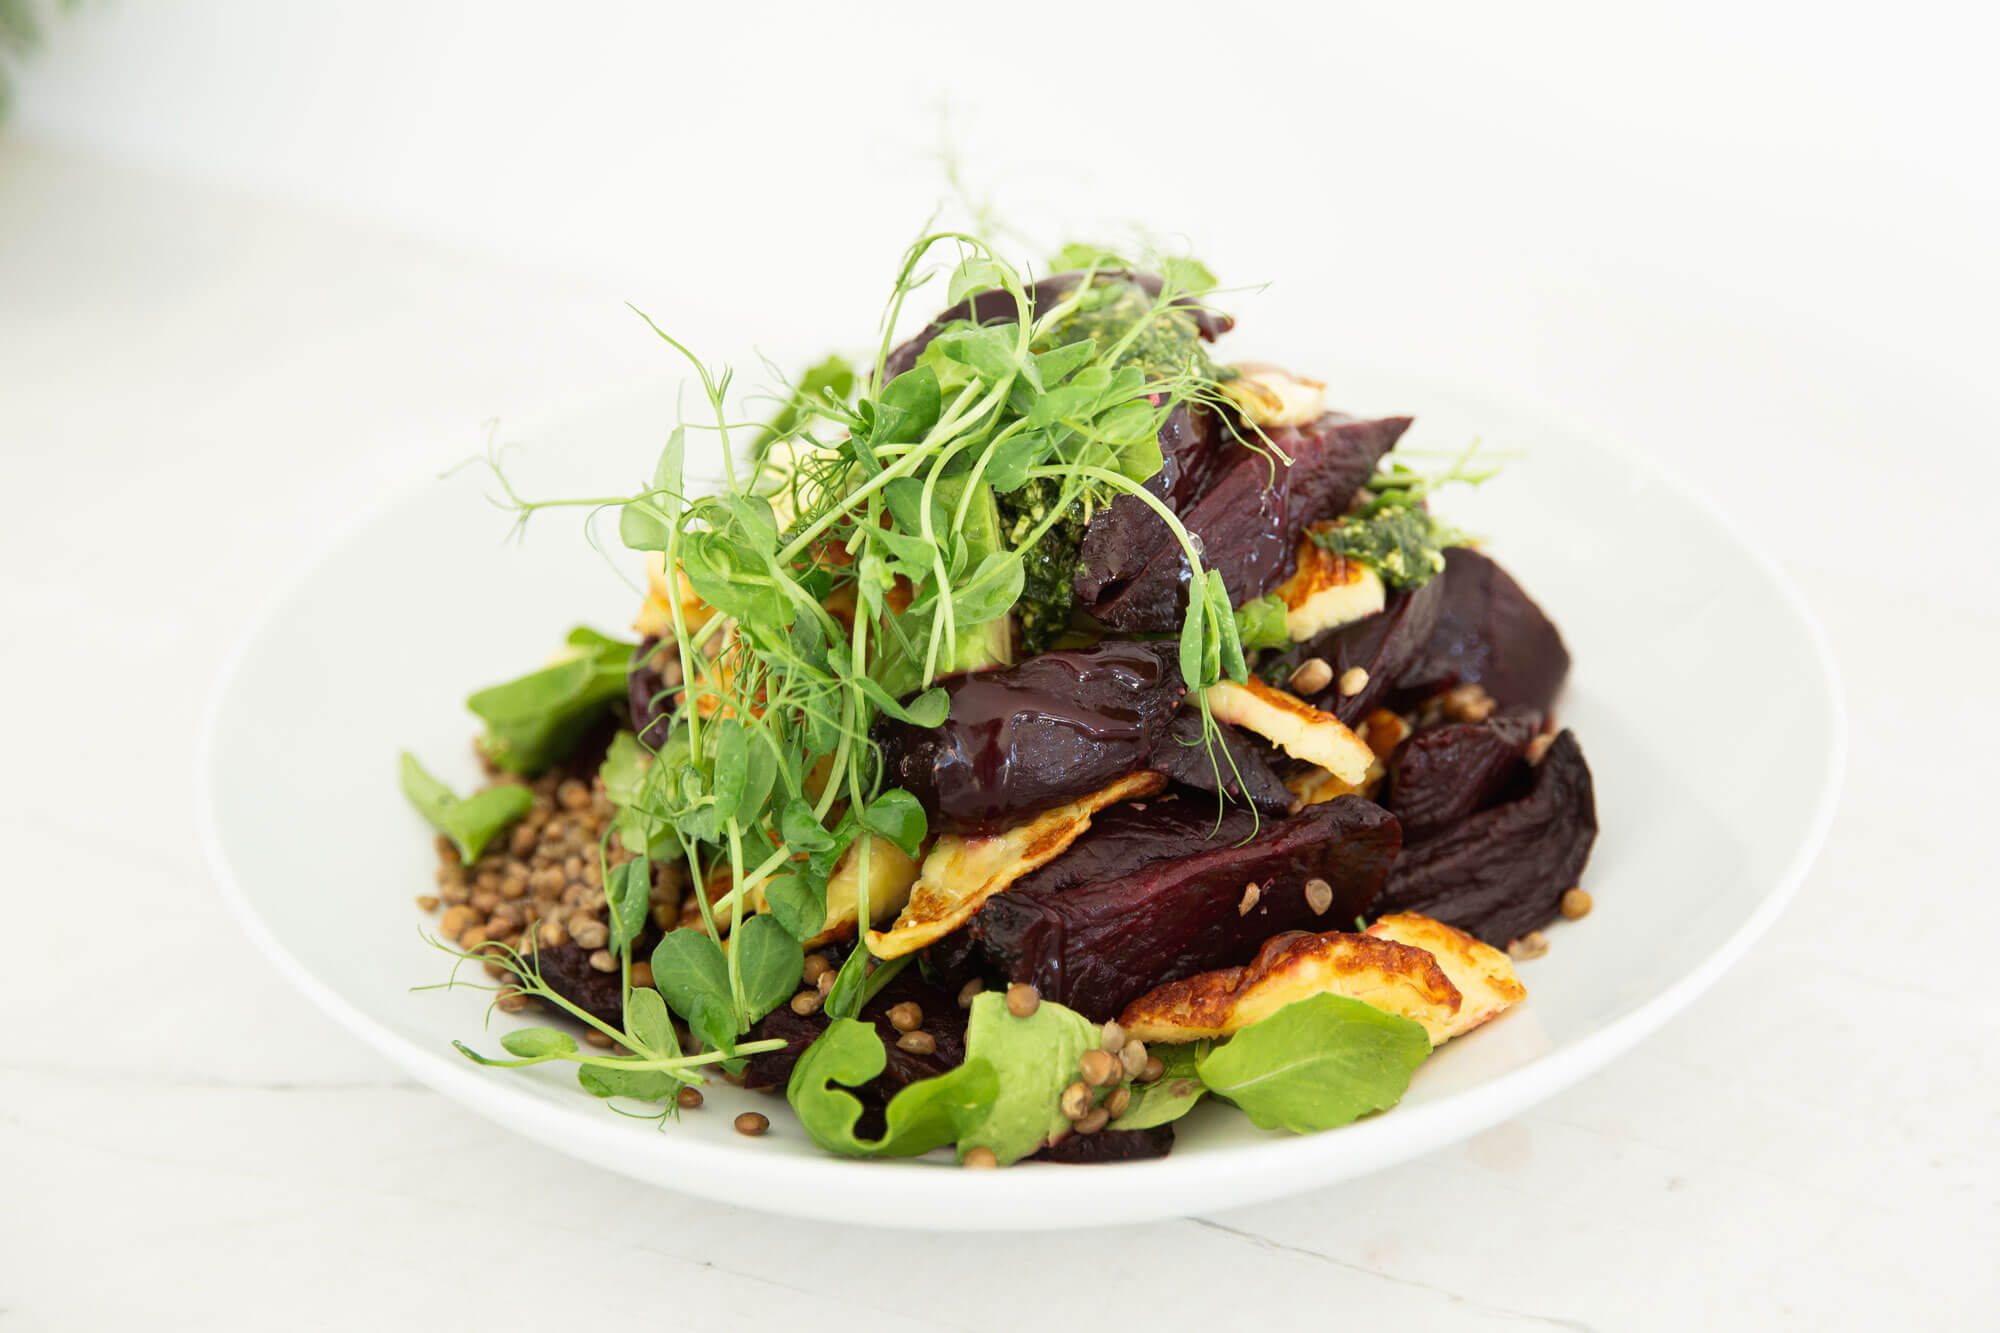 Salad with Beetroot, Haloumi and Lentils from Catroux's Salad Catering Menu